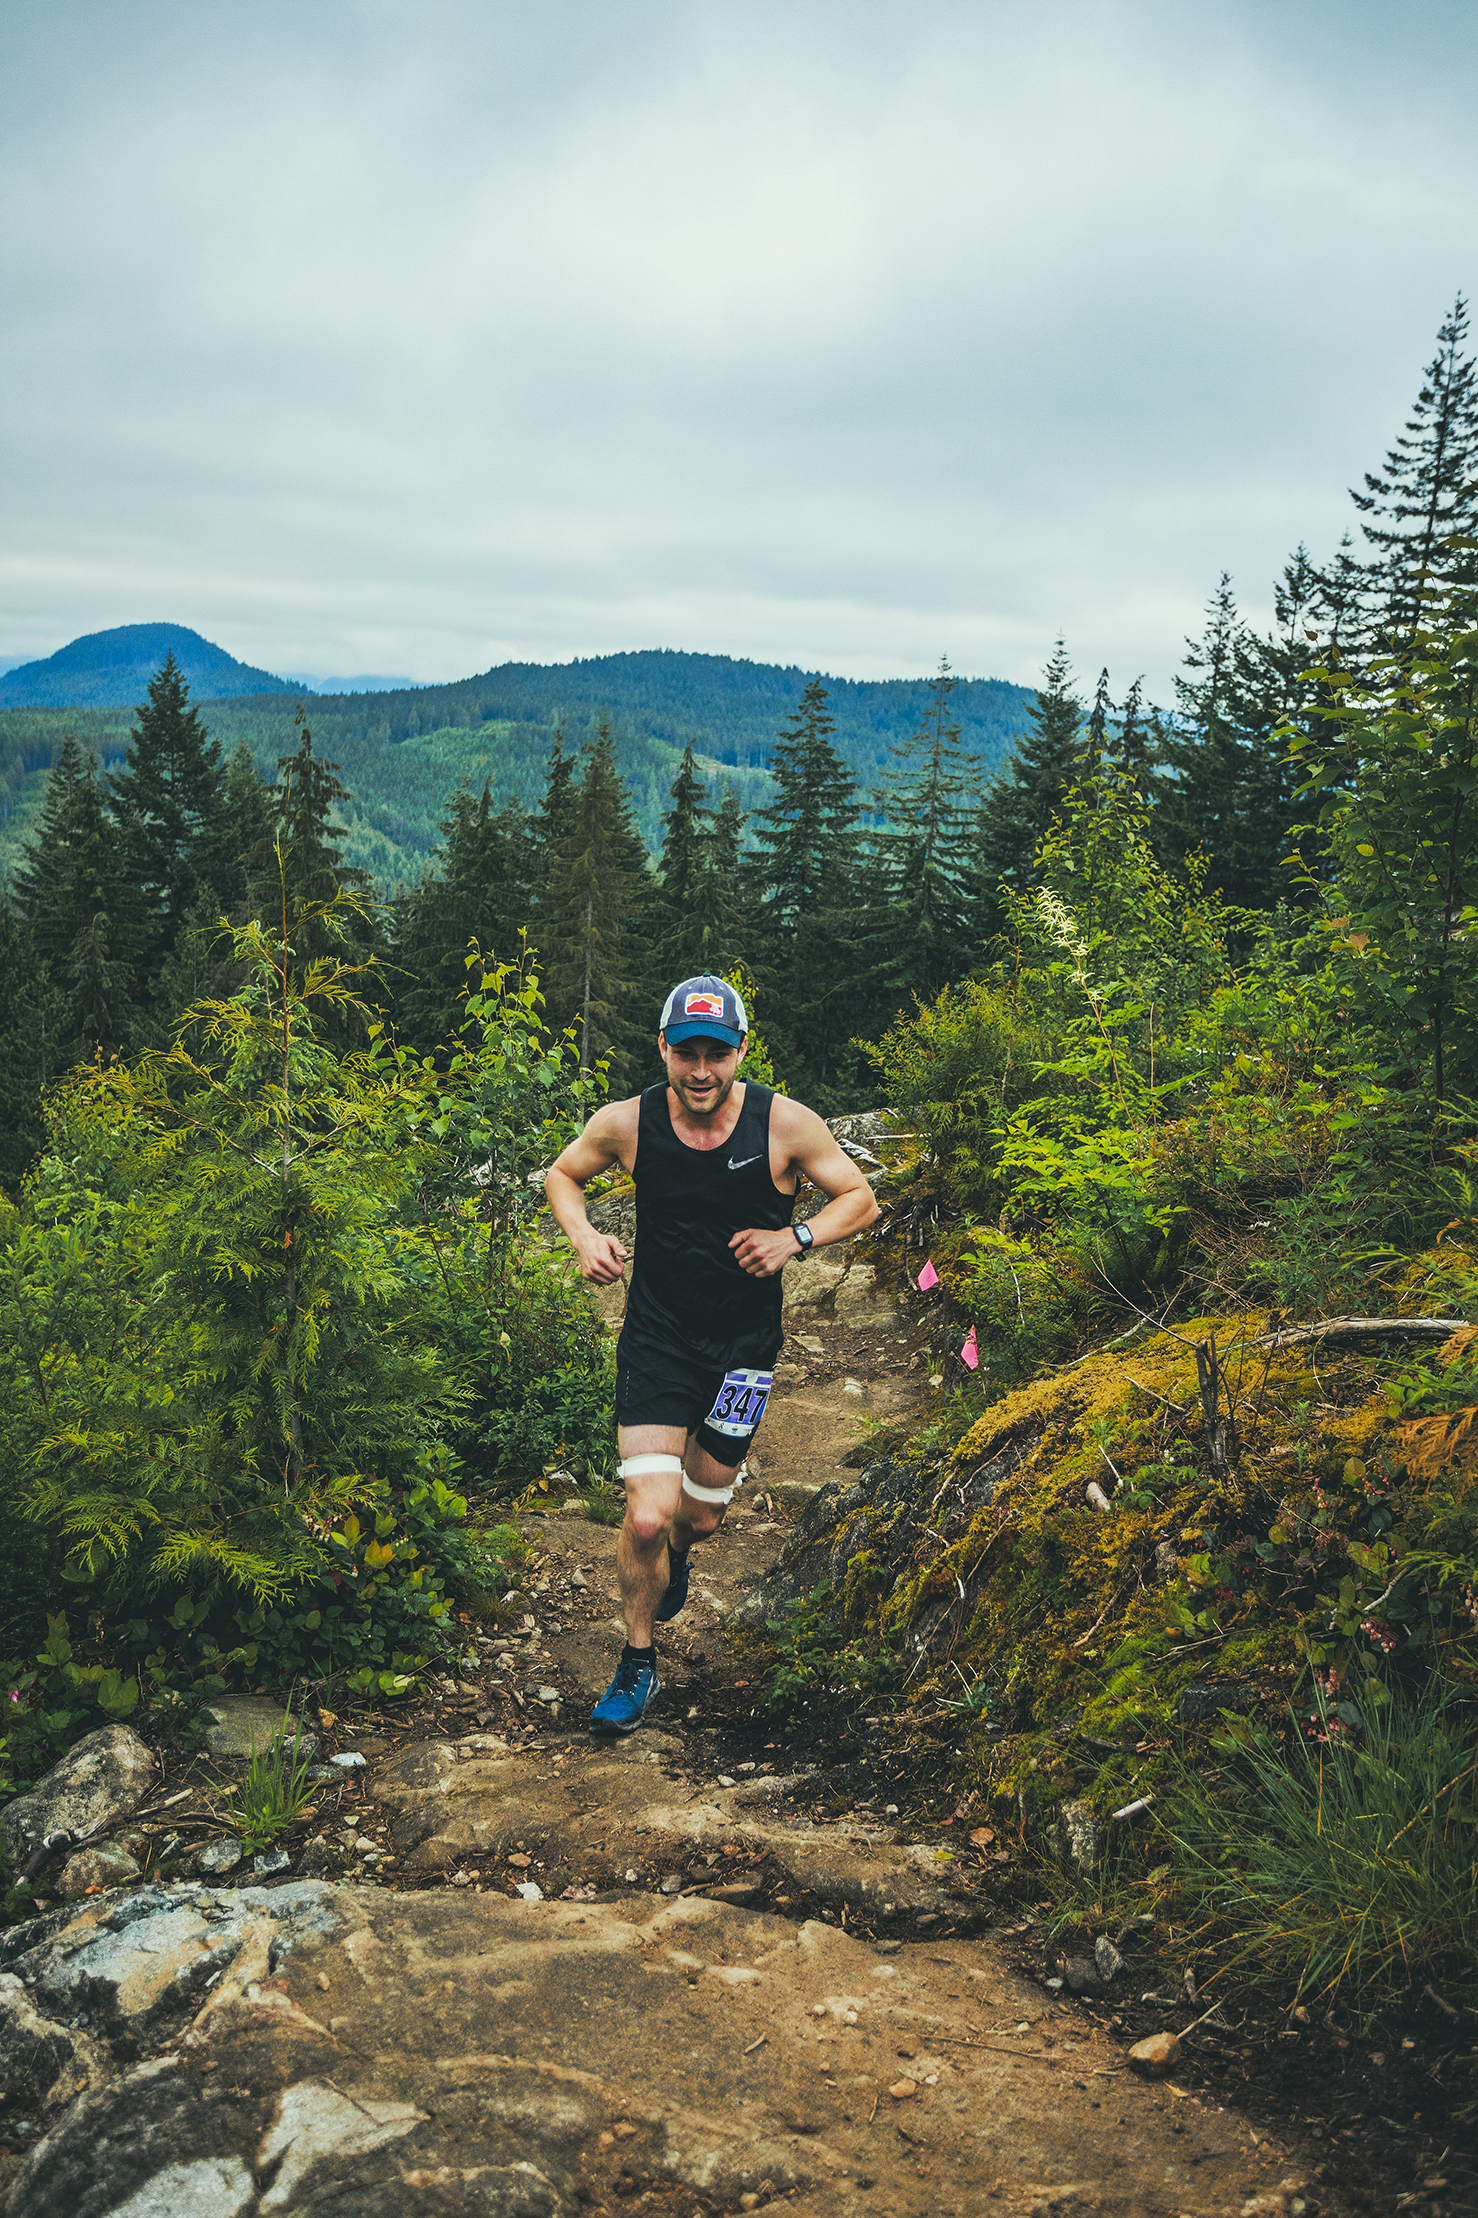 Fraser Valley Trail Races - Bear Mountain - IMG_1408 by Brice Ferre Studio - Vancouver Portrait Adventure and Athlete Photographer.jpg